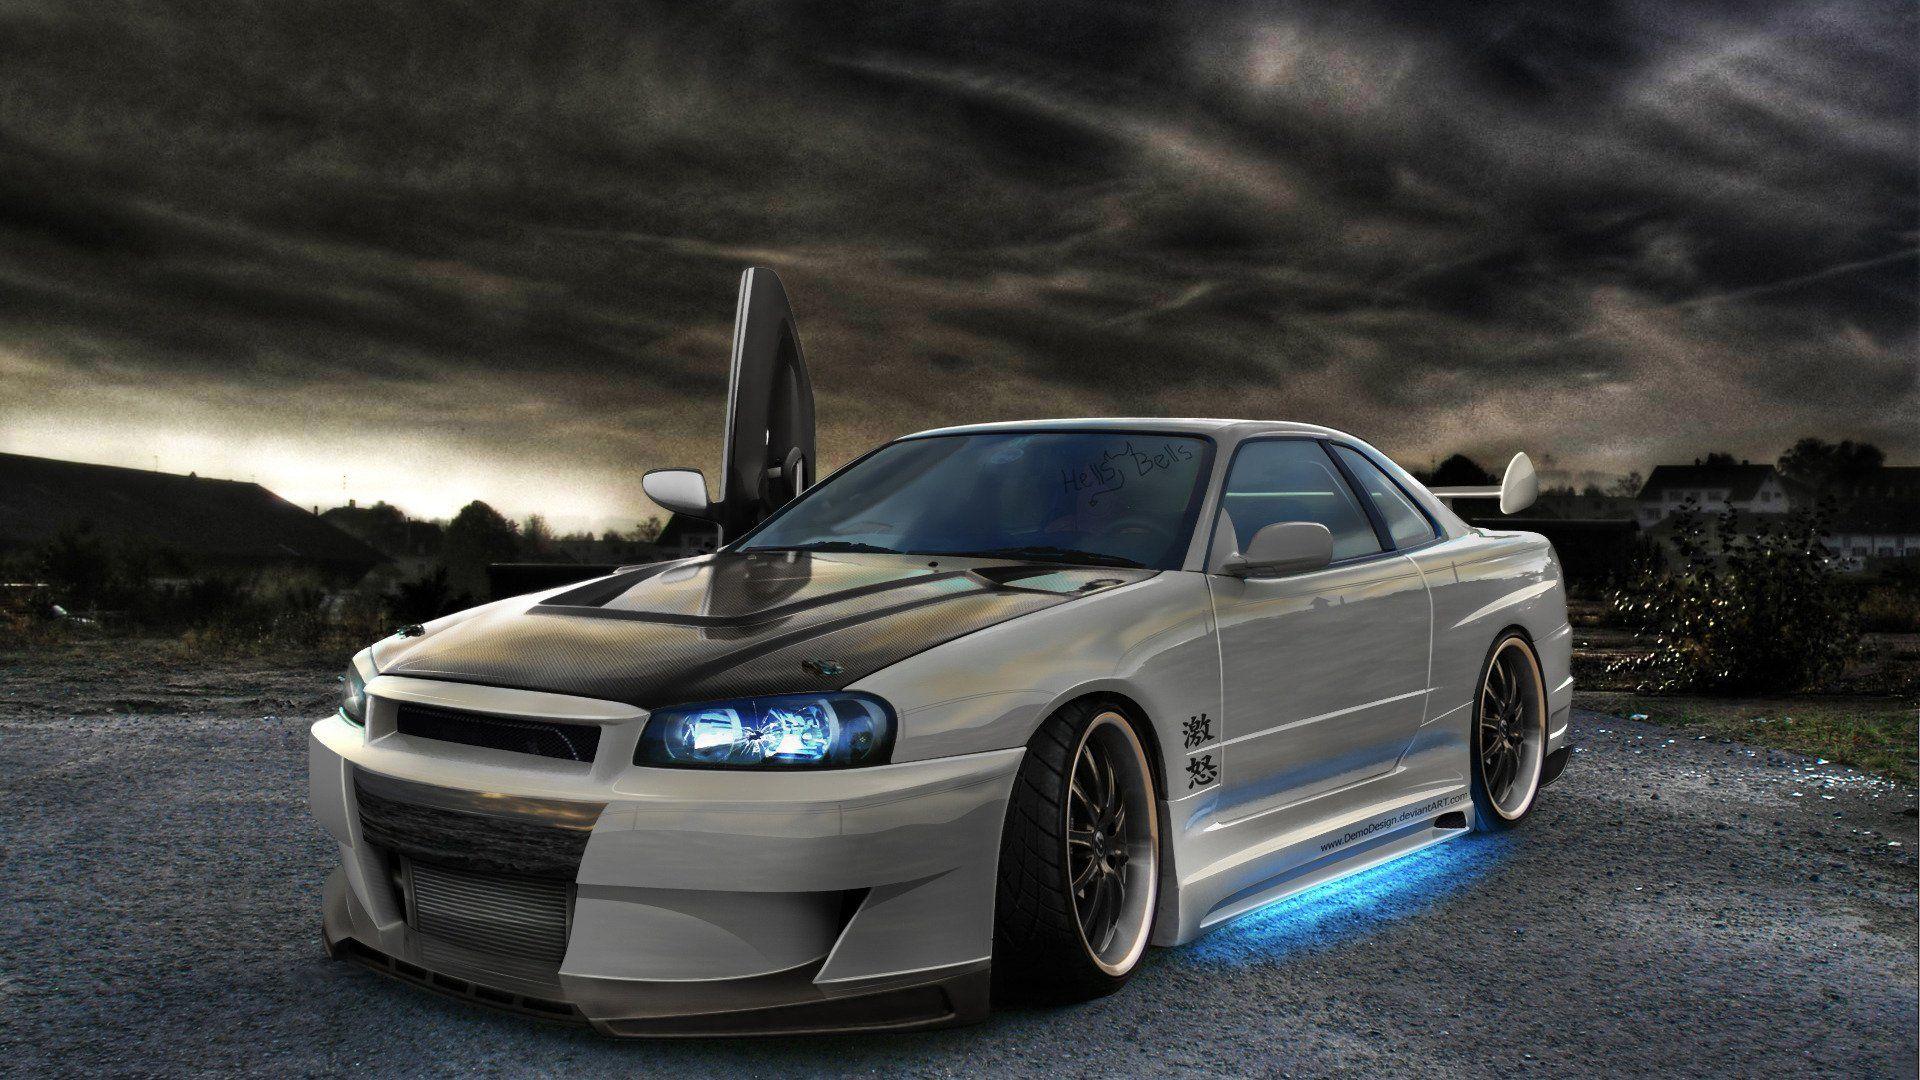 Skyline R Wallpapers Group × Nissan Skyline GTR R HD Wallpapers